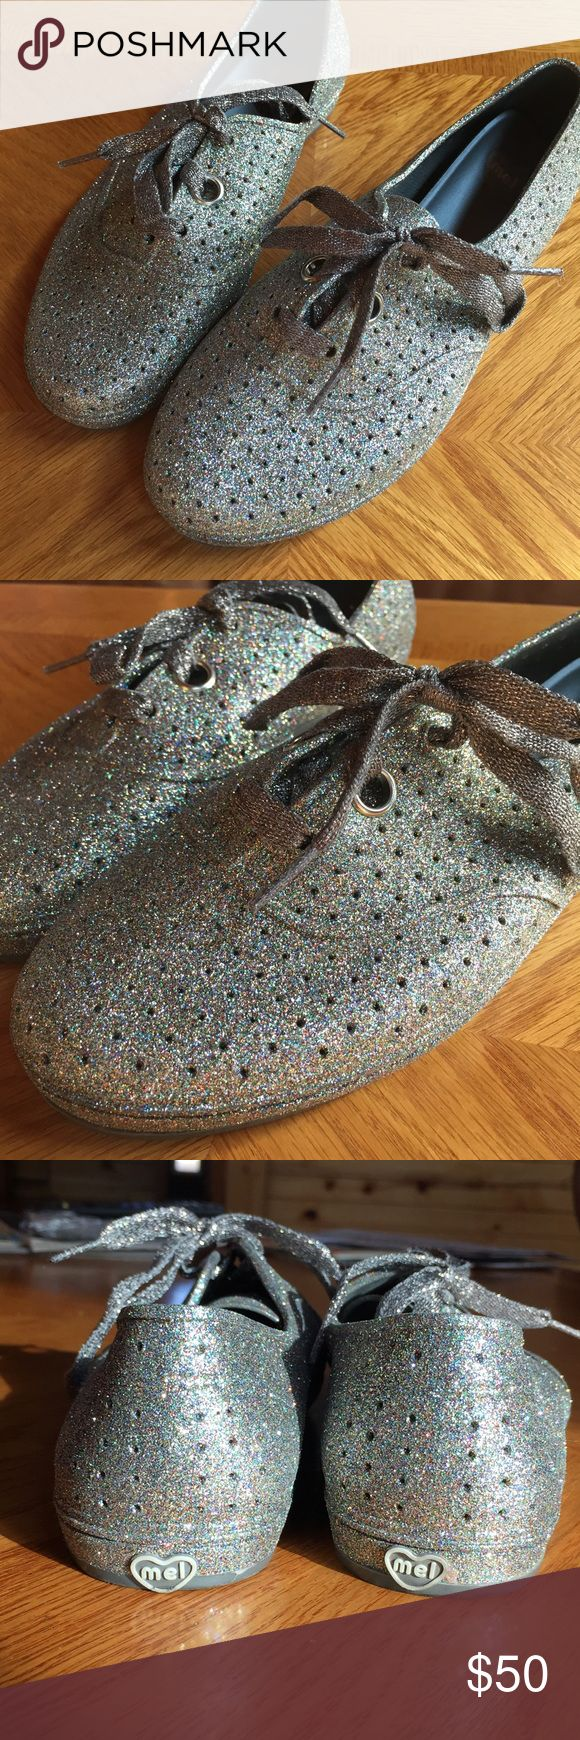 New! Melissa Sparkle Jelly Shoes Never worn outsider! Mel dreamed by Melissa jelly shoes! Keds like style. Seriously sooo Sparkly in the sun! Perfect for any glitter loving fan. Melissa Shoes Flats & Loafers